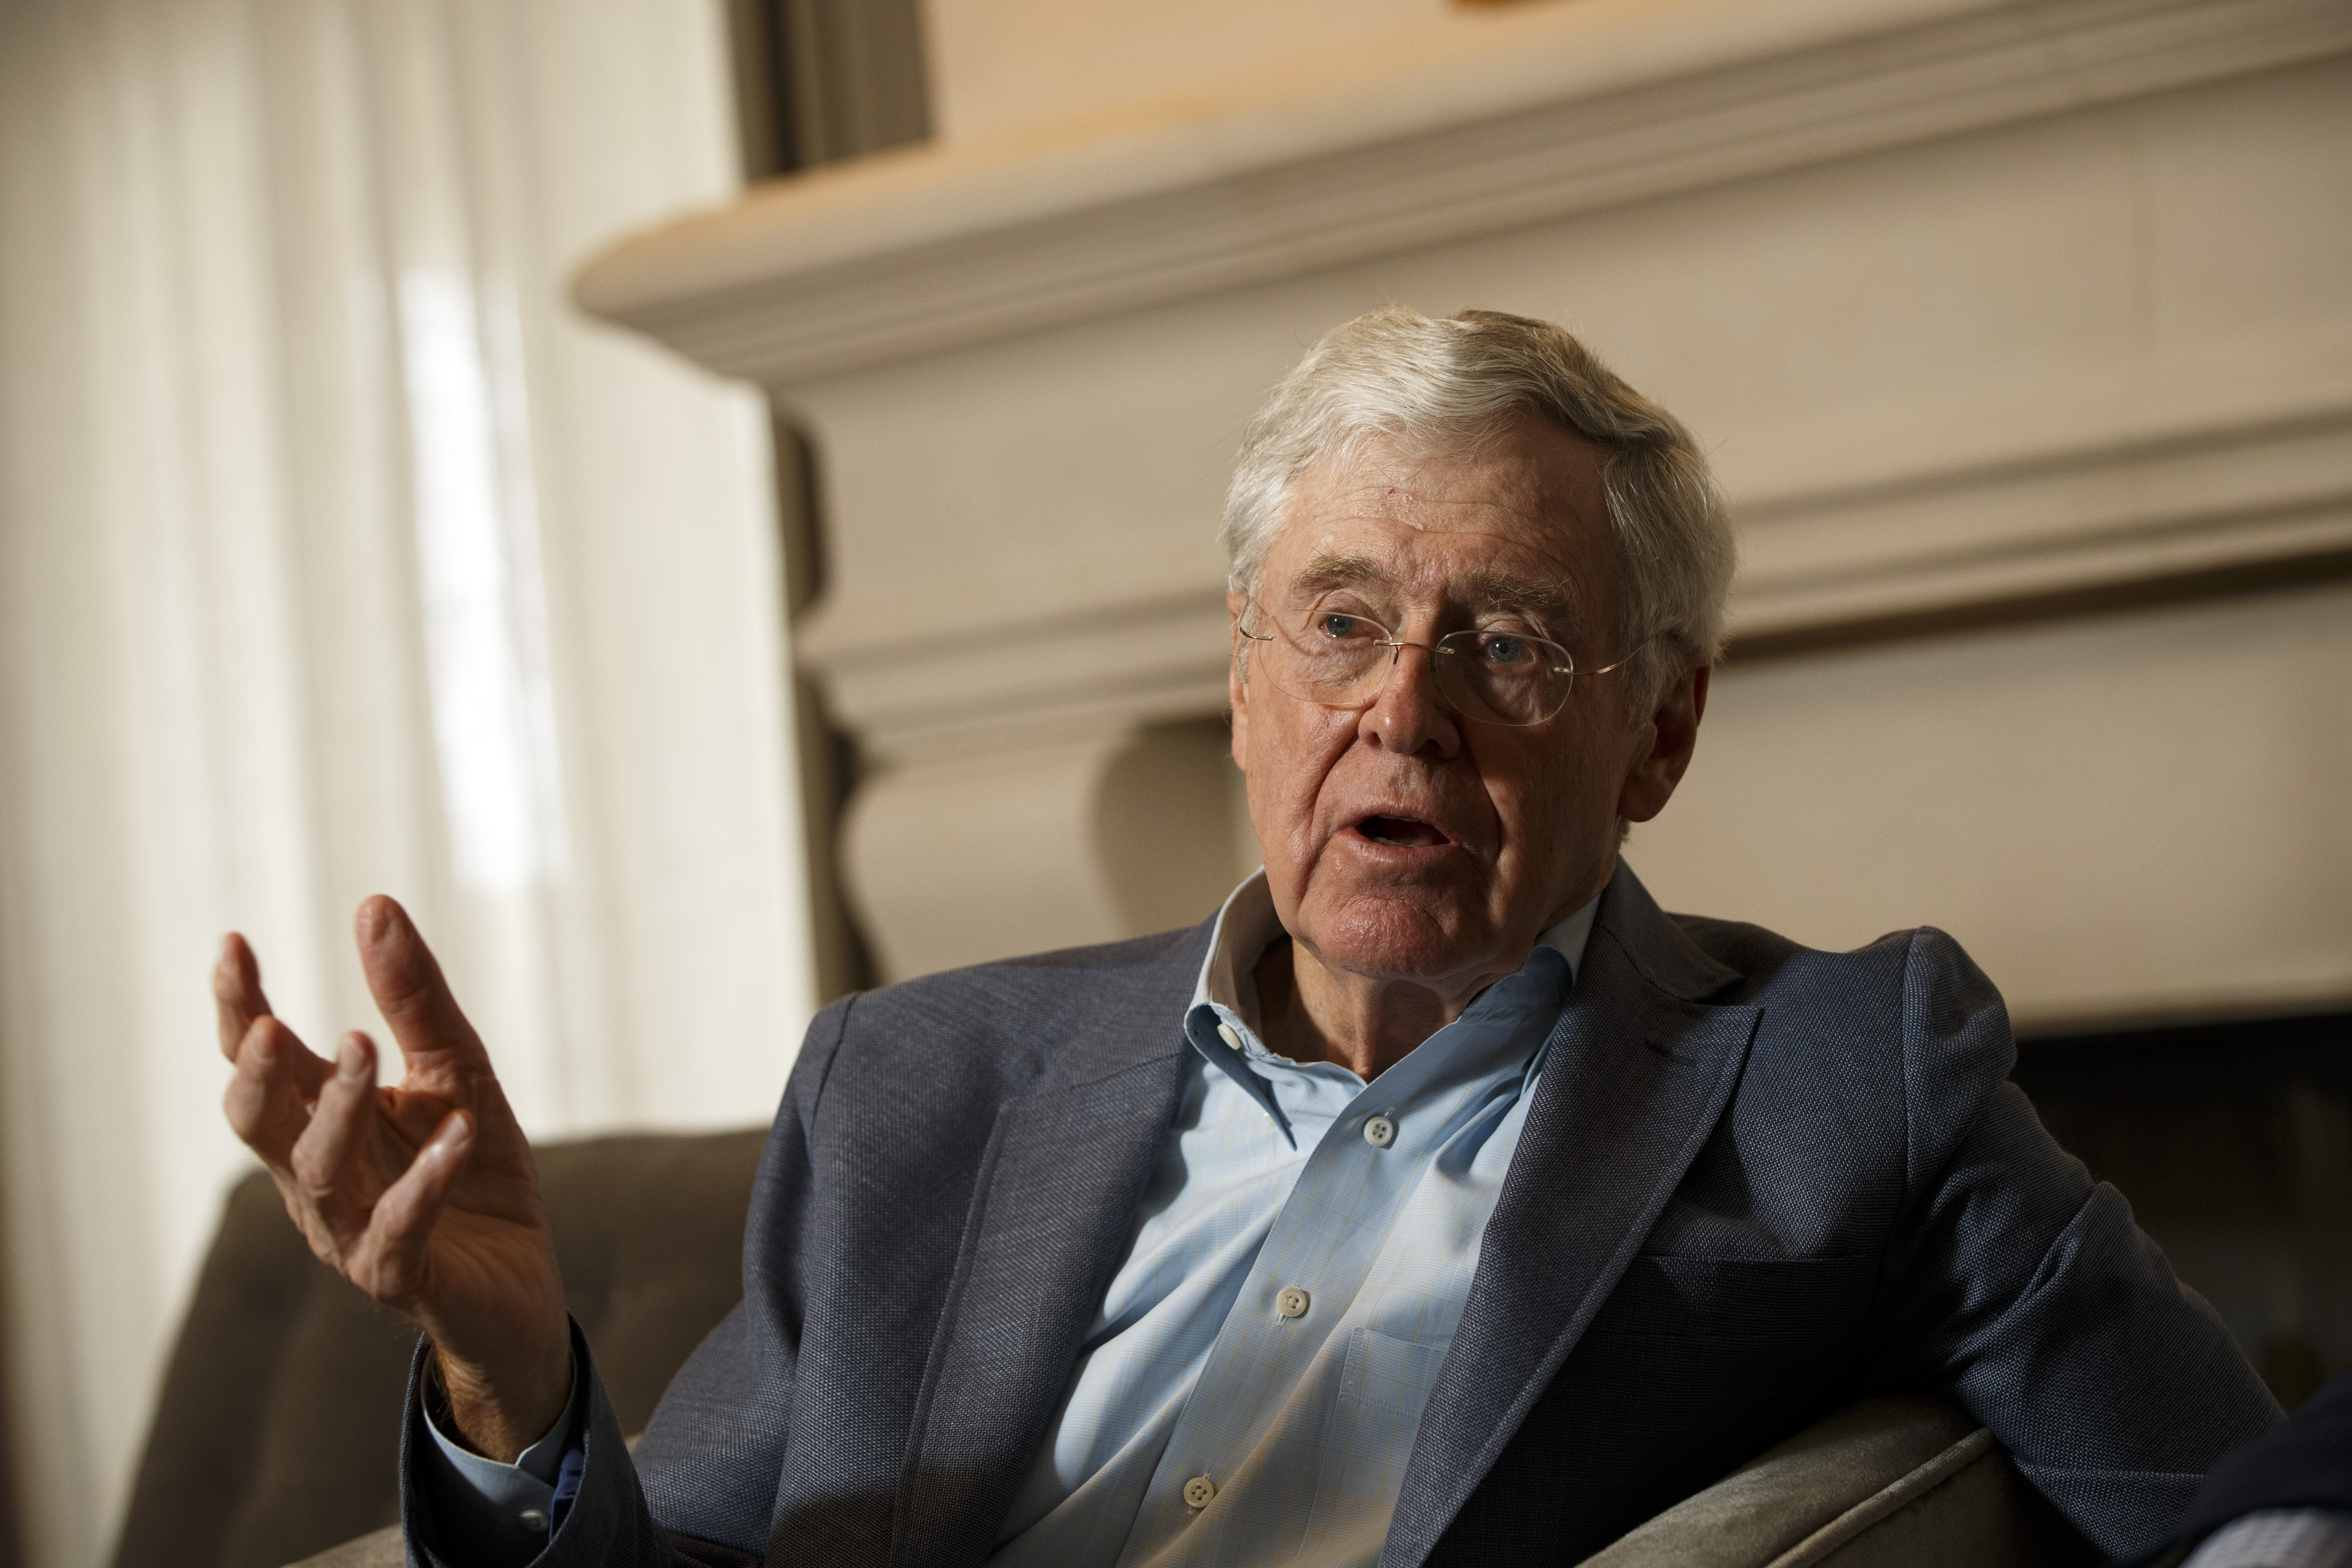 Charles Koch speaks during an interview with the Washington Post at the Freedom Partners Summit on Monday, August 3, 2015, in Dana Point, Calif.